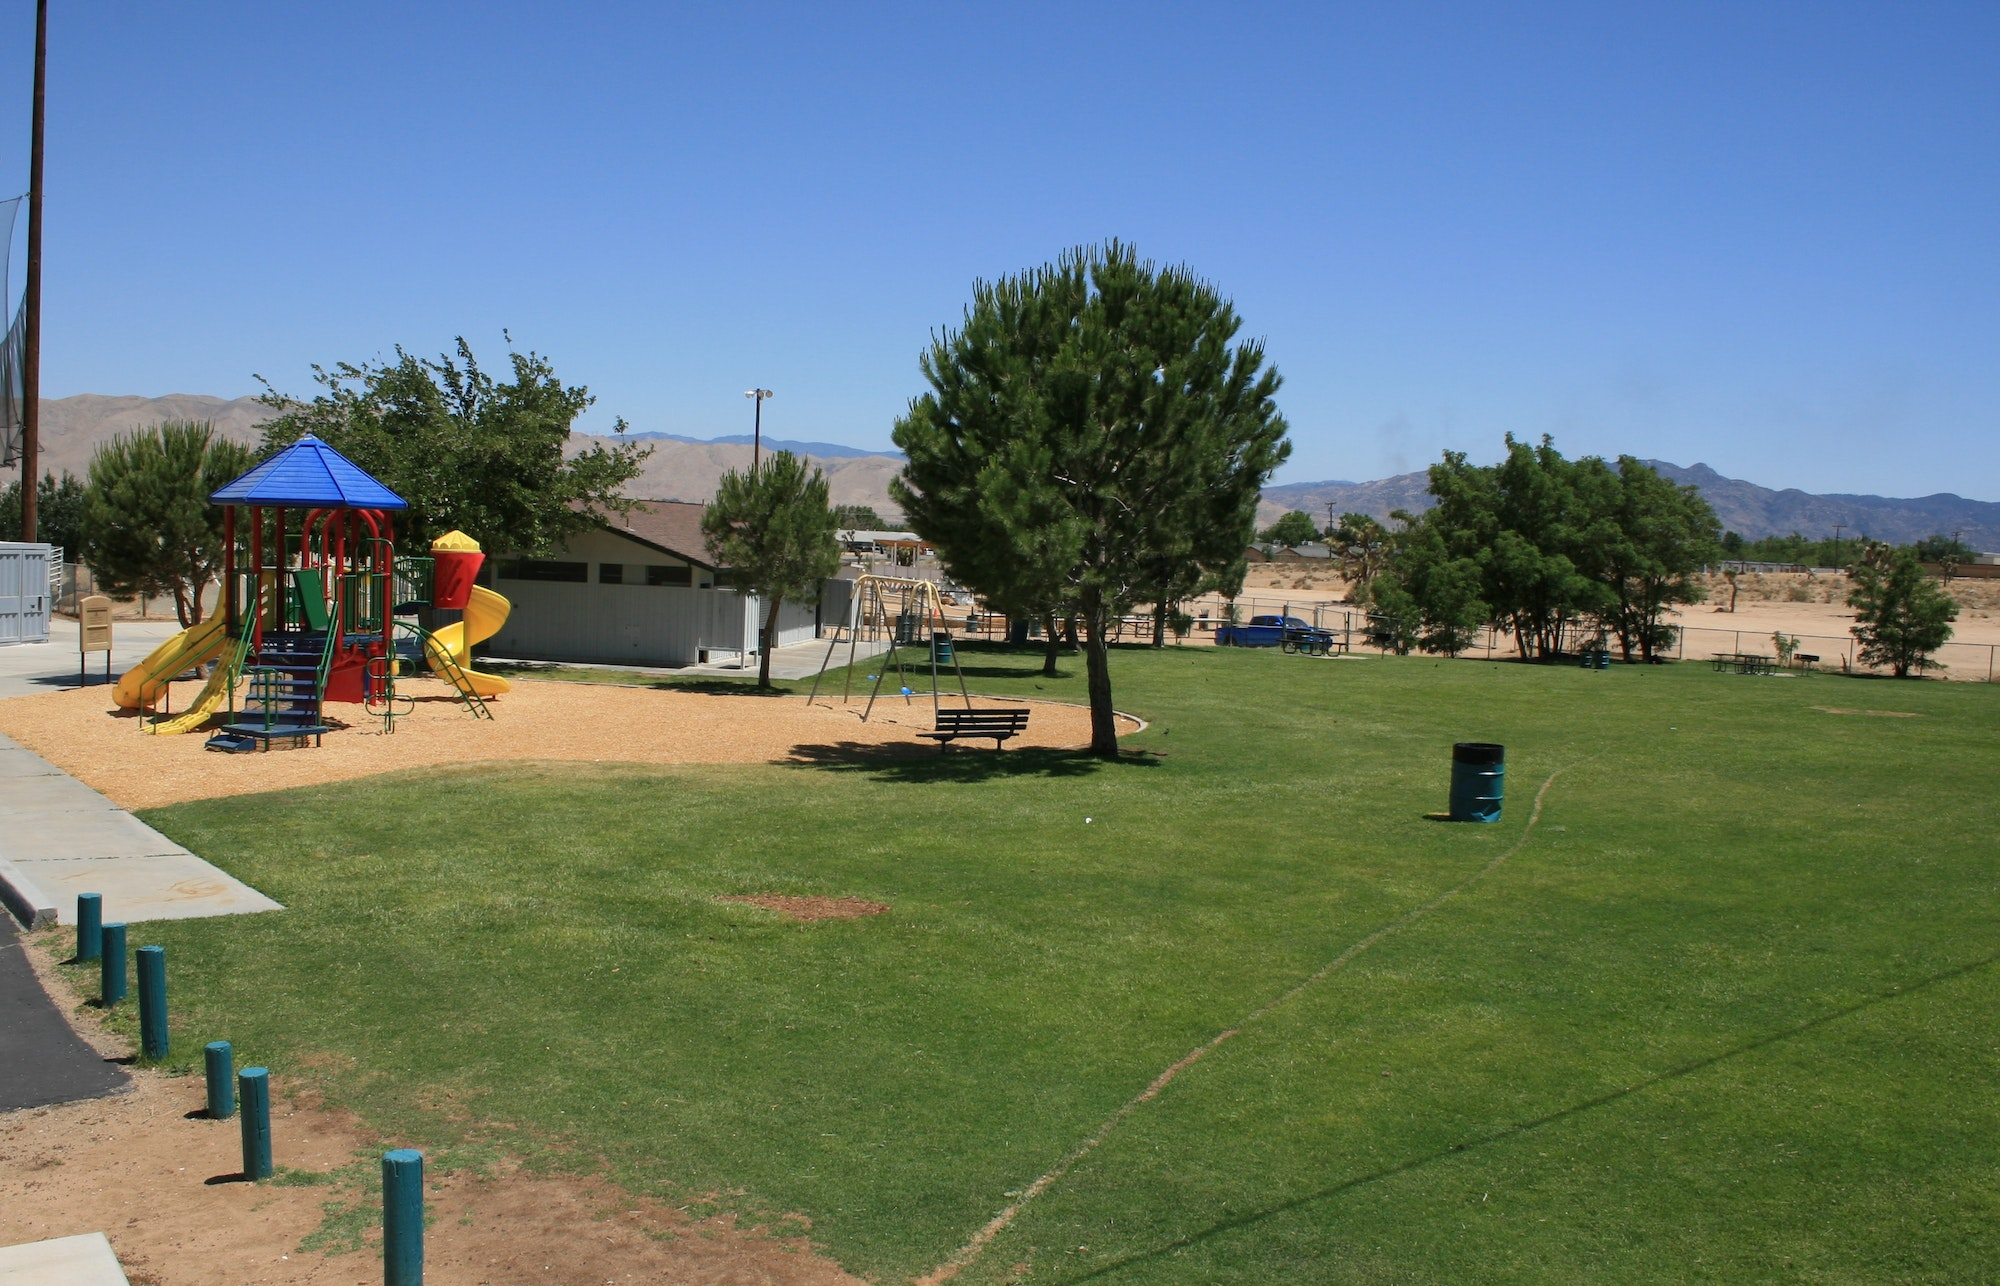 May contain: grass, plant, furniture, bench, playground, and play area